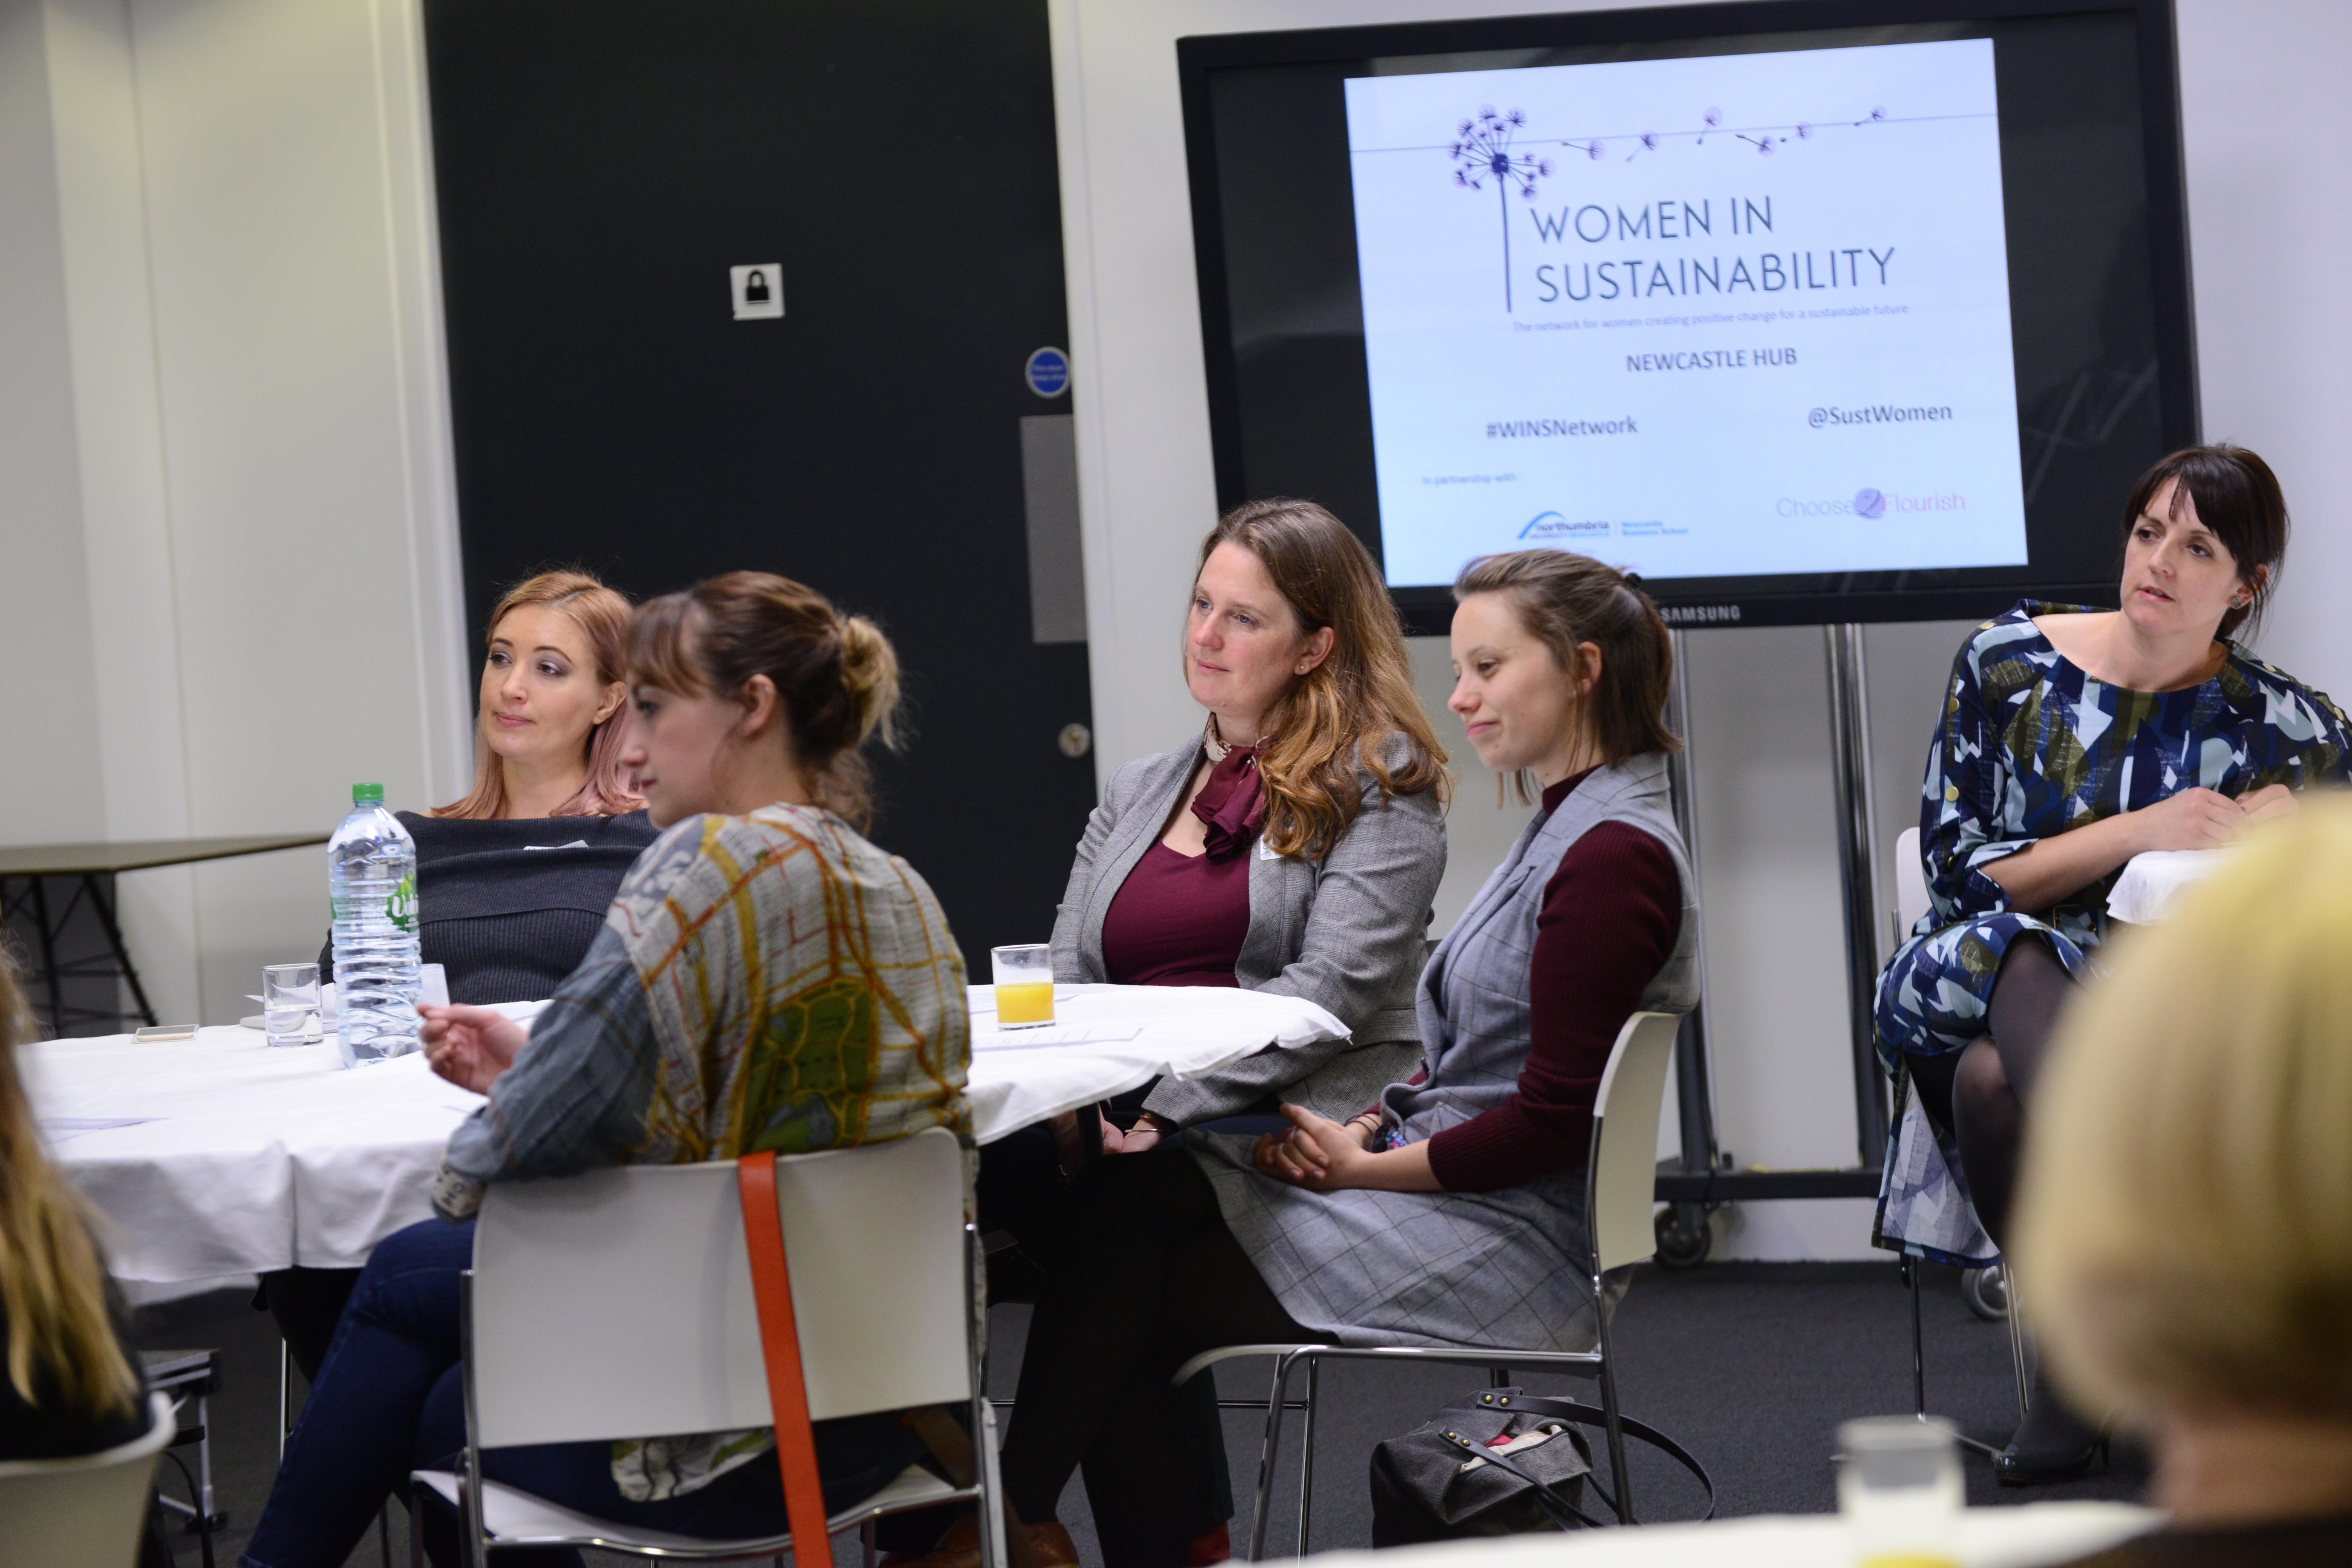 women in sustainability Newcastle